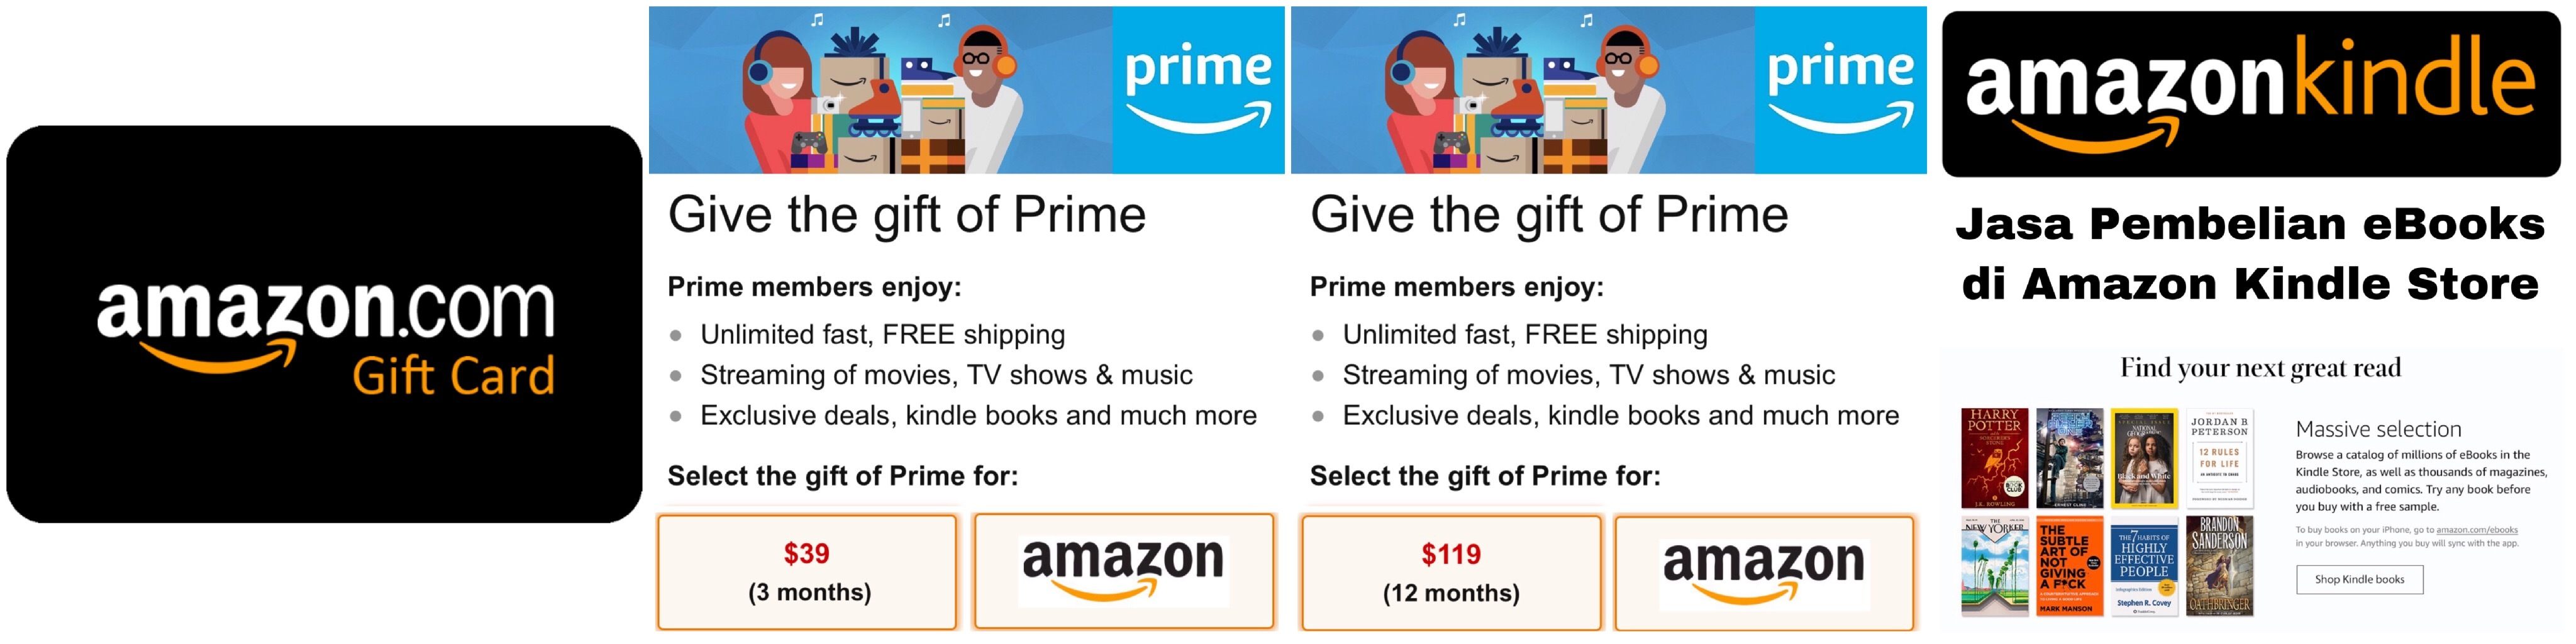 Amazon Gift Card US nominal $5, $10, $15, $20, $25, $50, $100 dan Amazon Prime Give the gift of Prime 3 Months, 12 months - ibanezblack.store